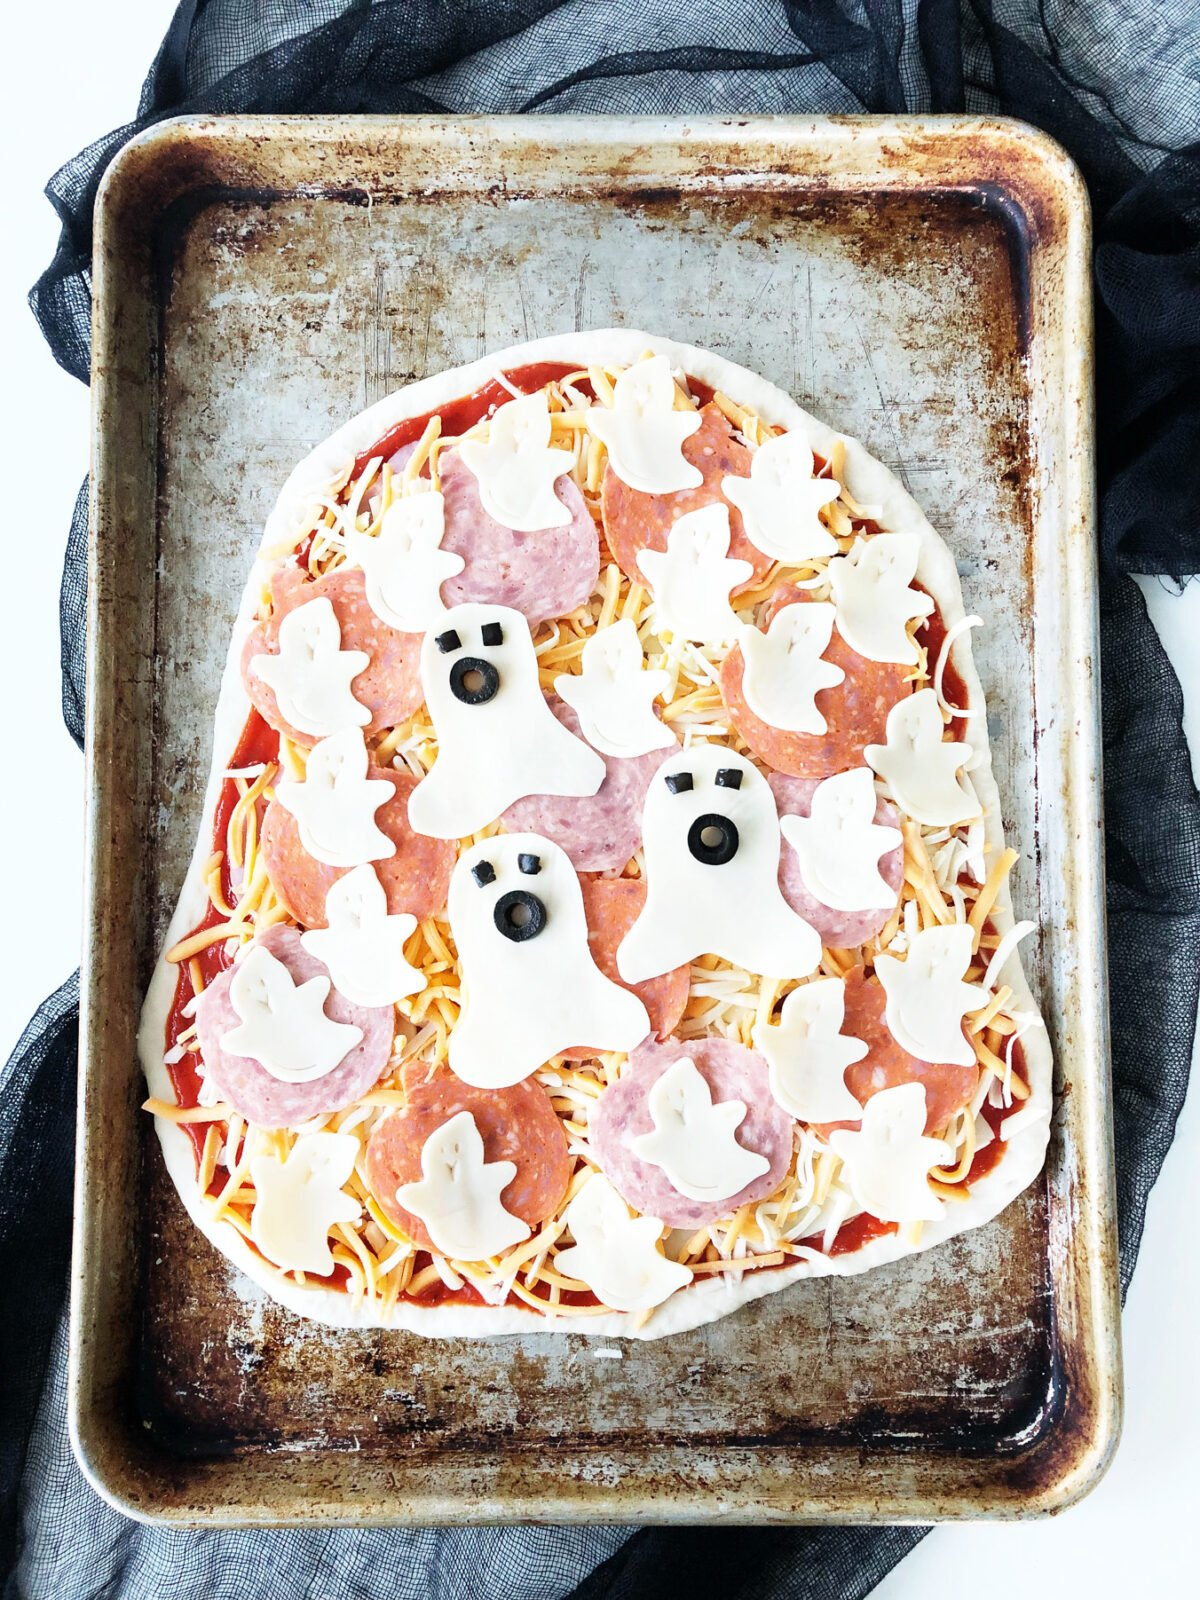 a top down view of an unbaked pizza with ghosts made out of cheese. they have eyes and mouths made out of black olives